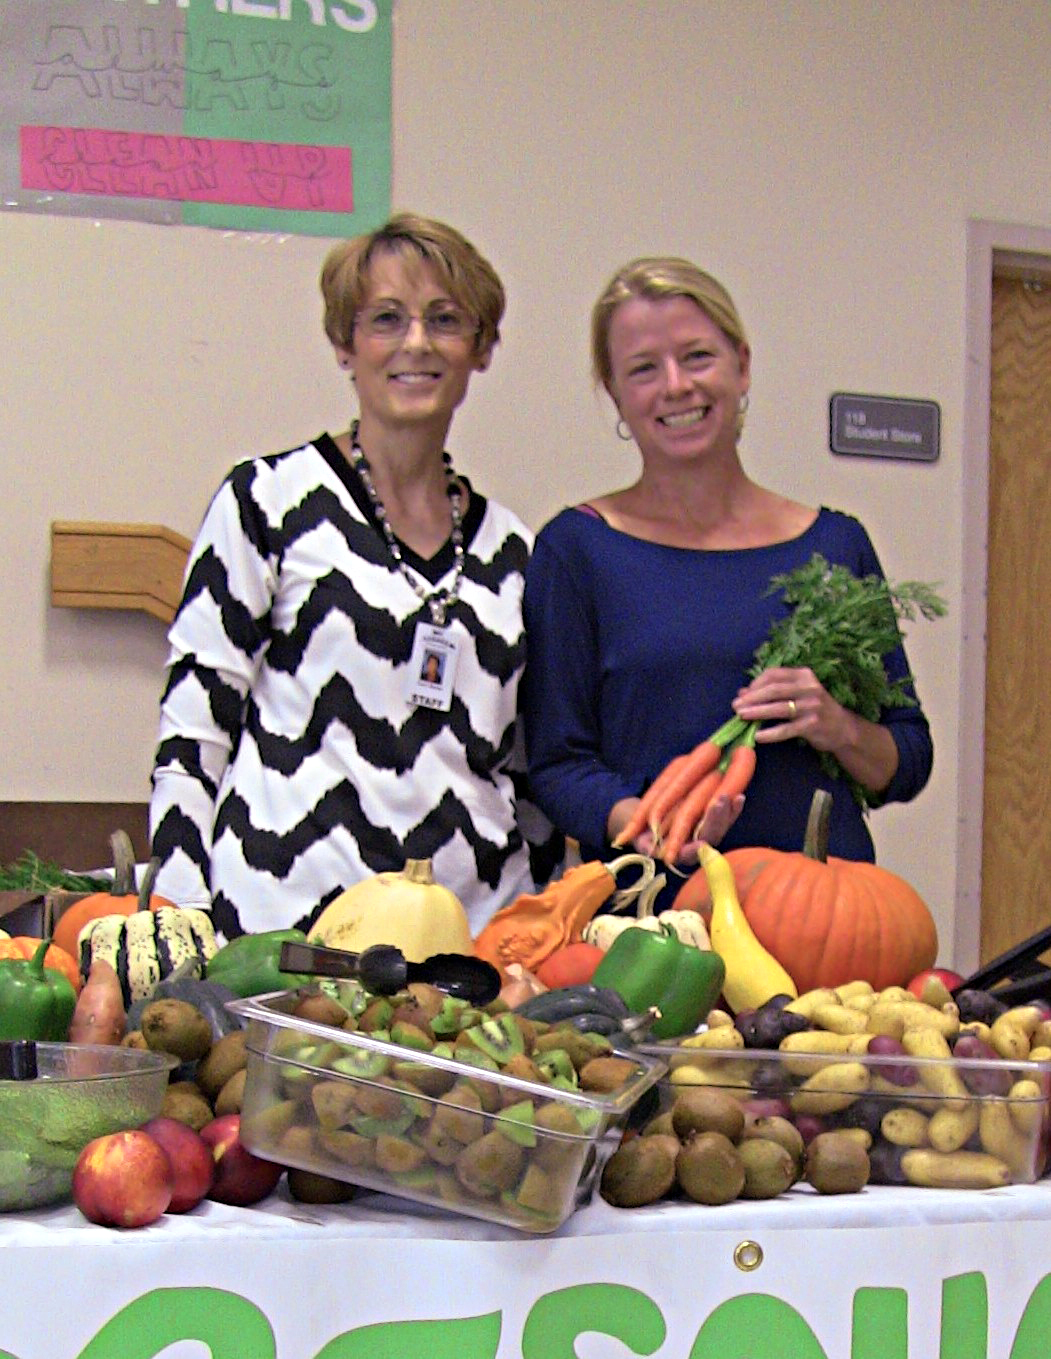 Nutrition Director and Farmer stand at display table full of produce for Taste Washington Day